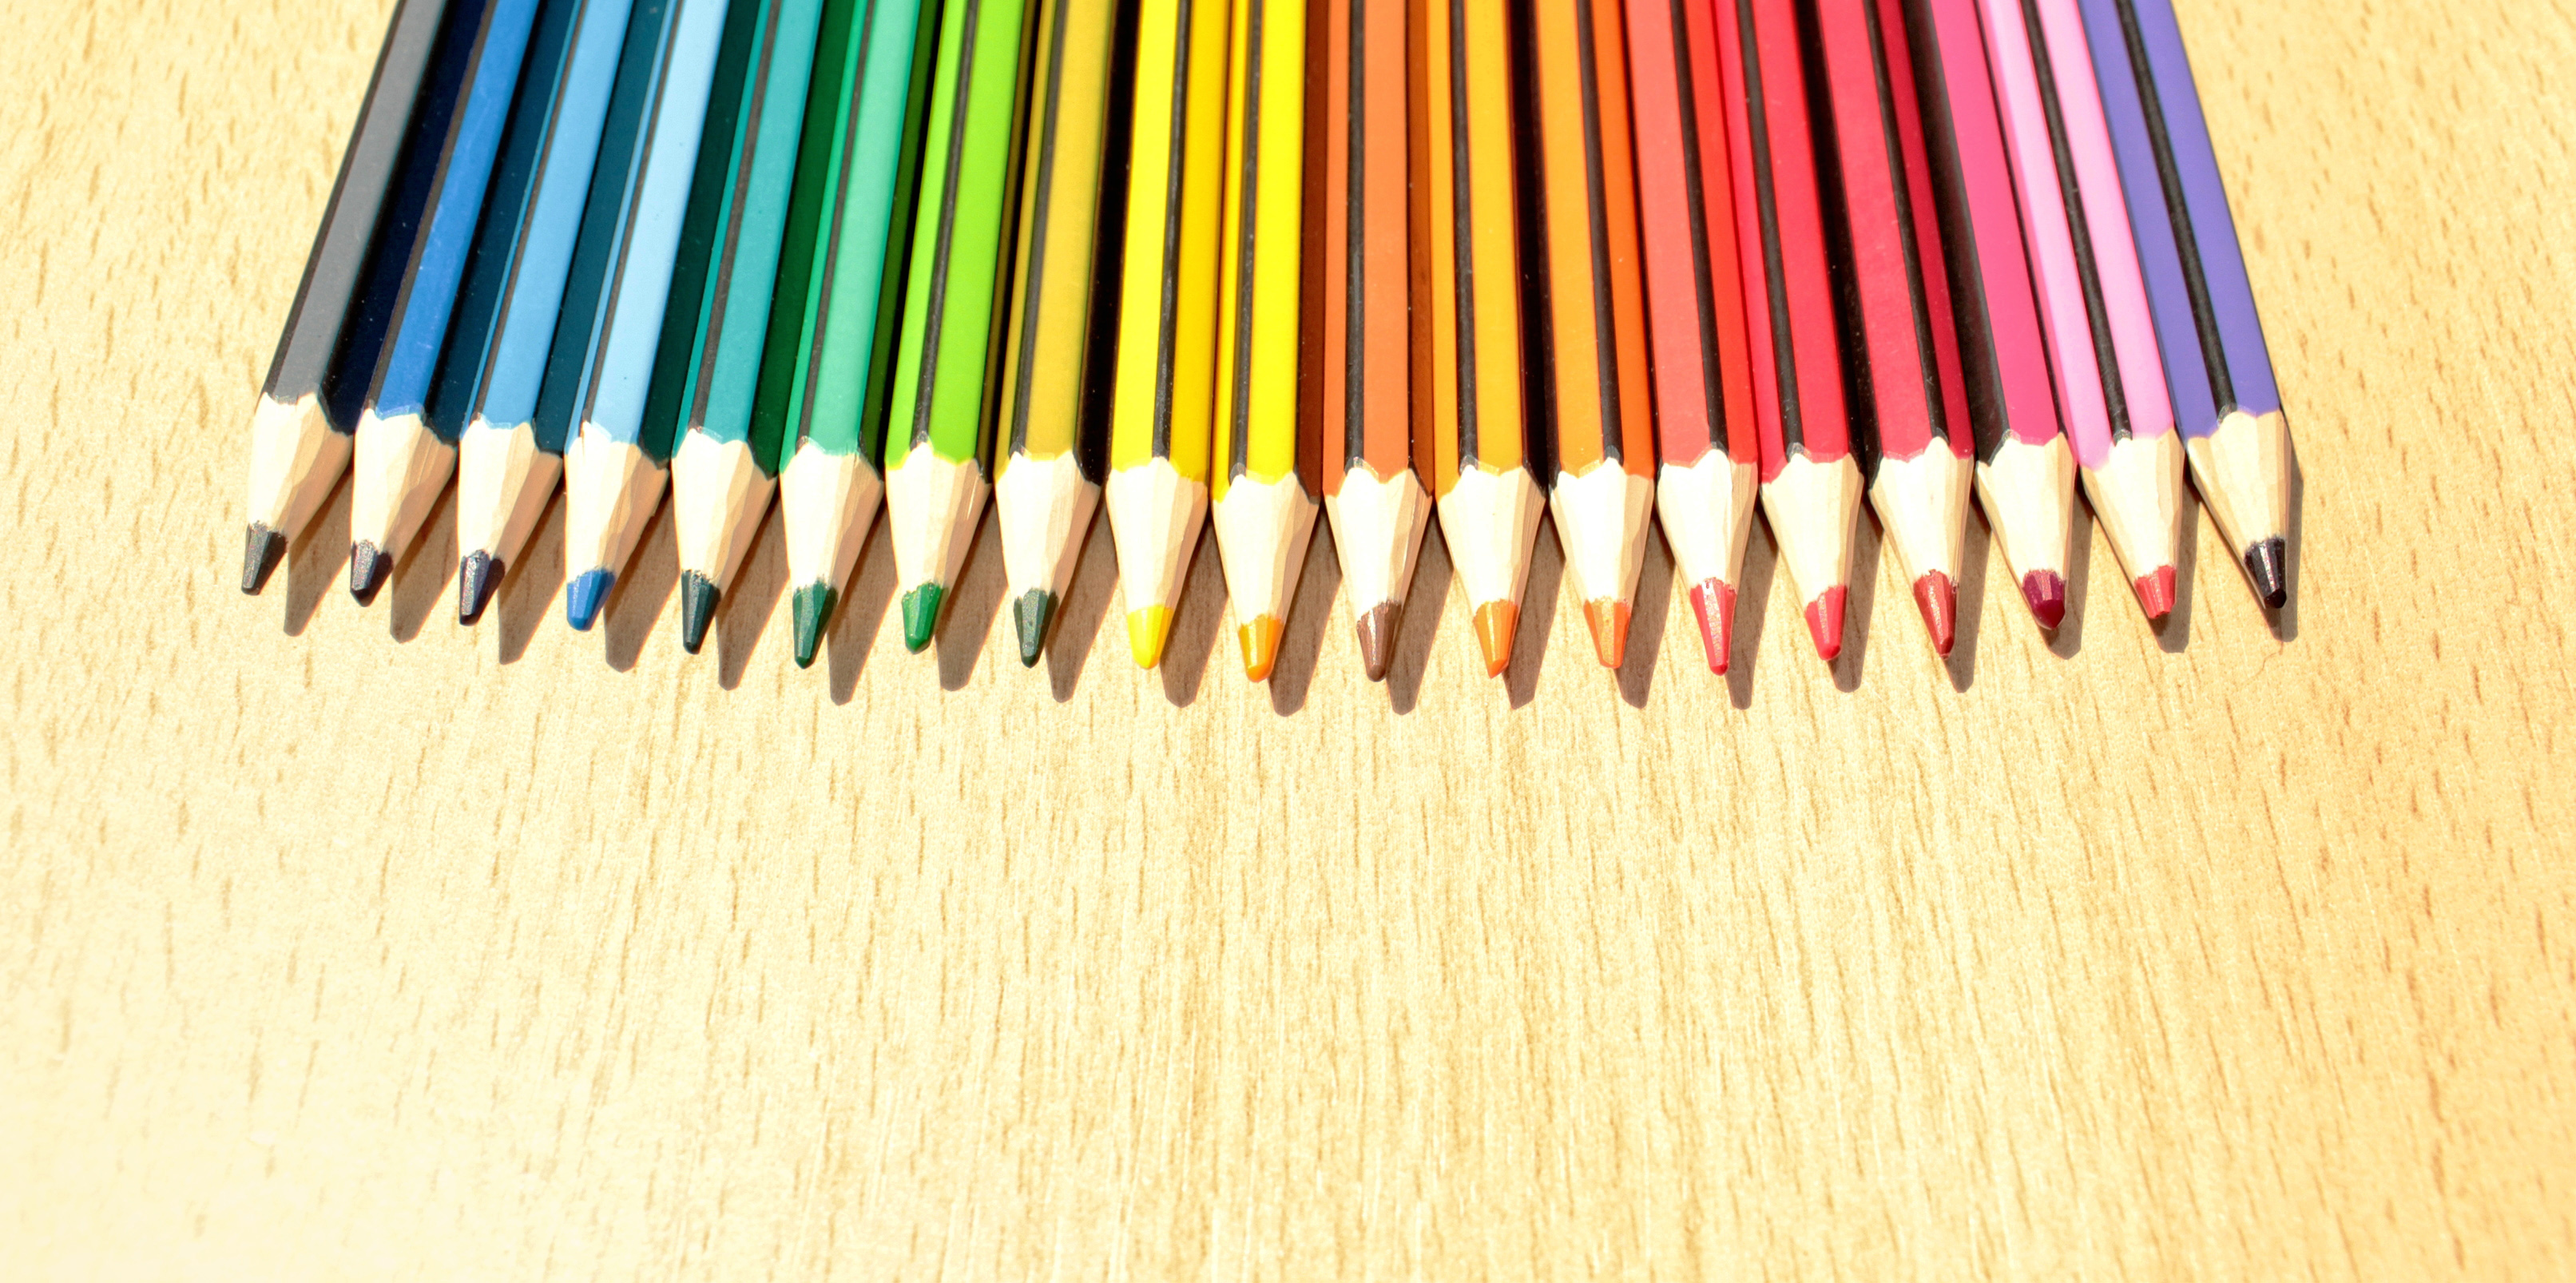 Colorful Pencils in a Row with Copyspace, Abstract, School, Nobody, Object, HQ Photo